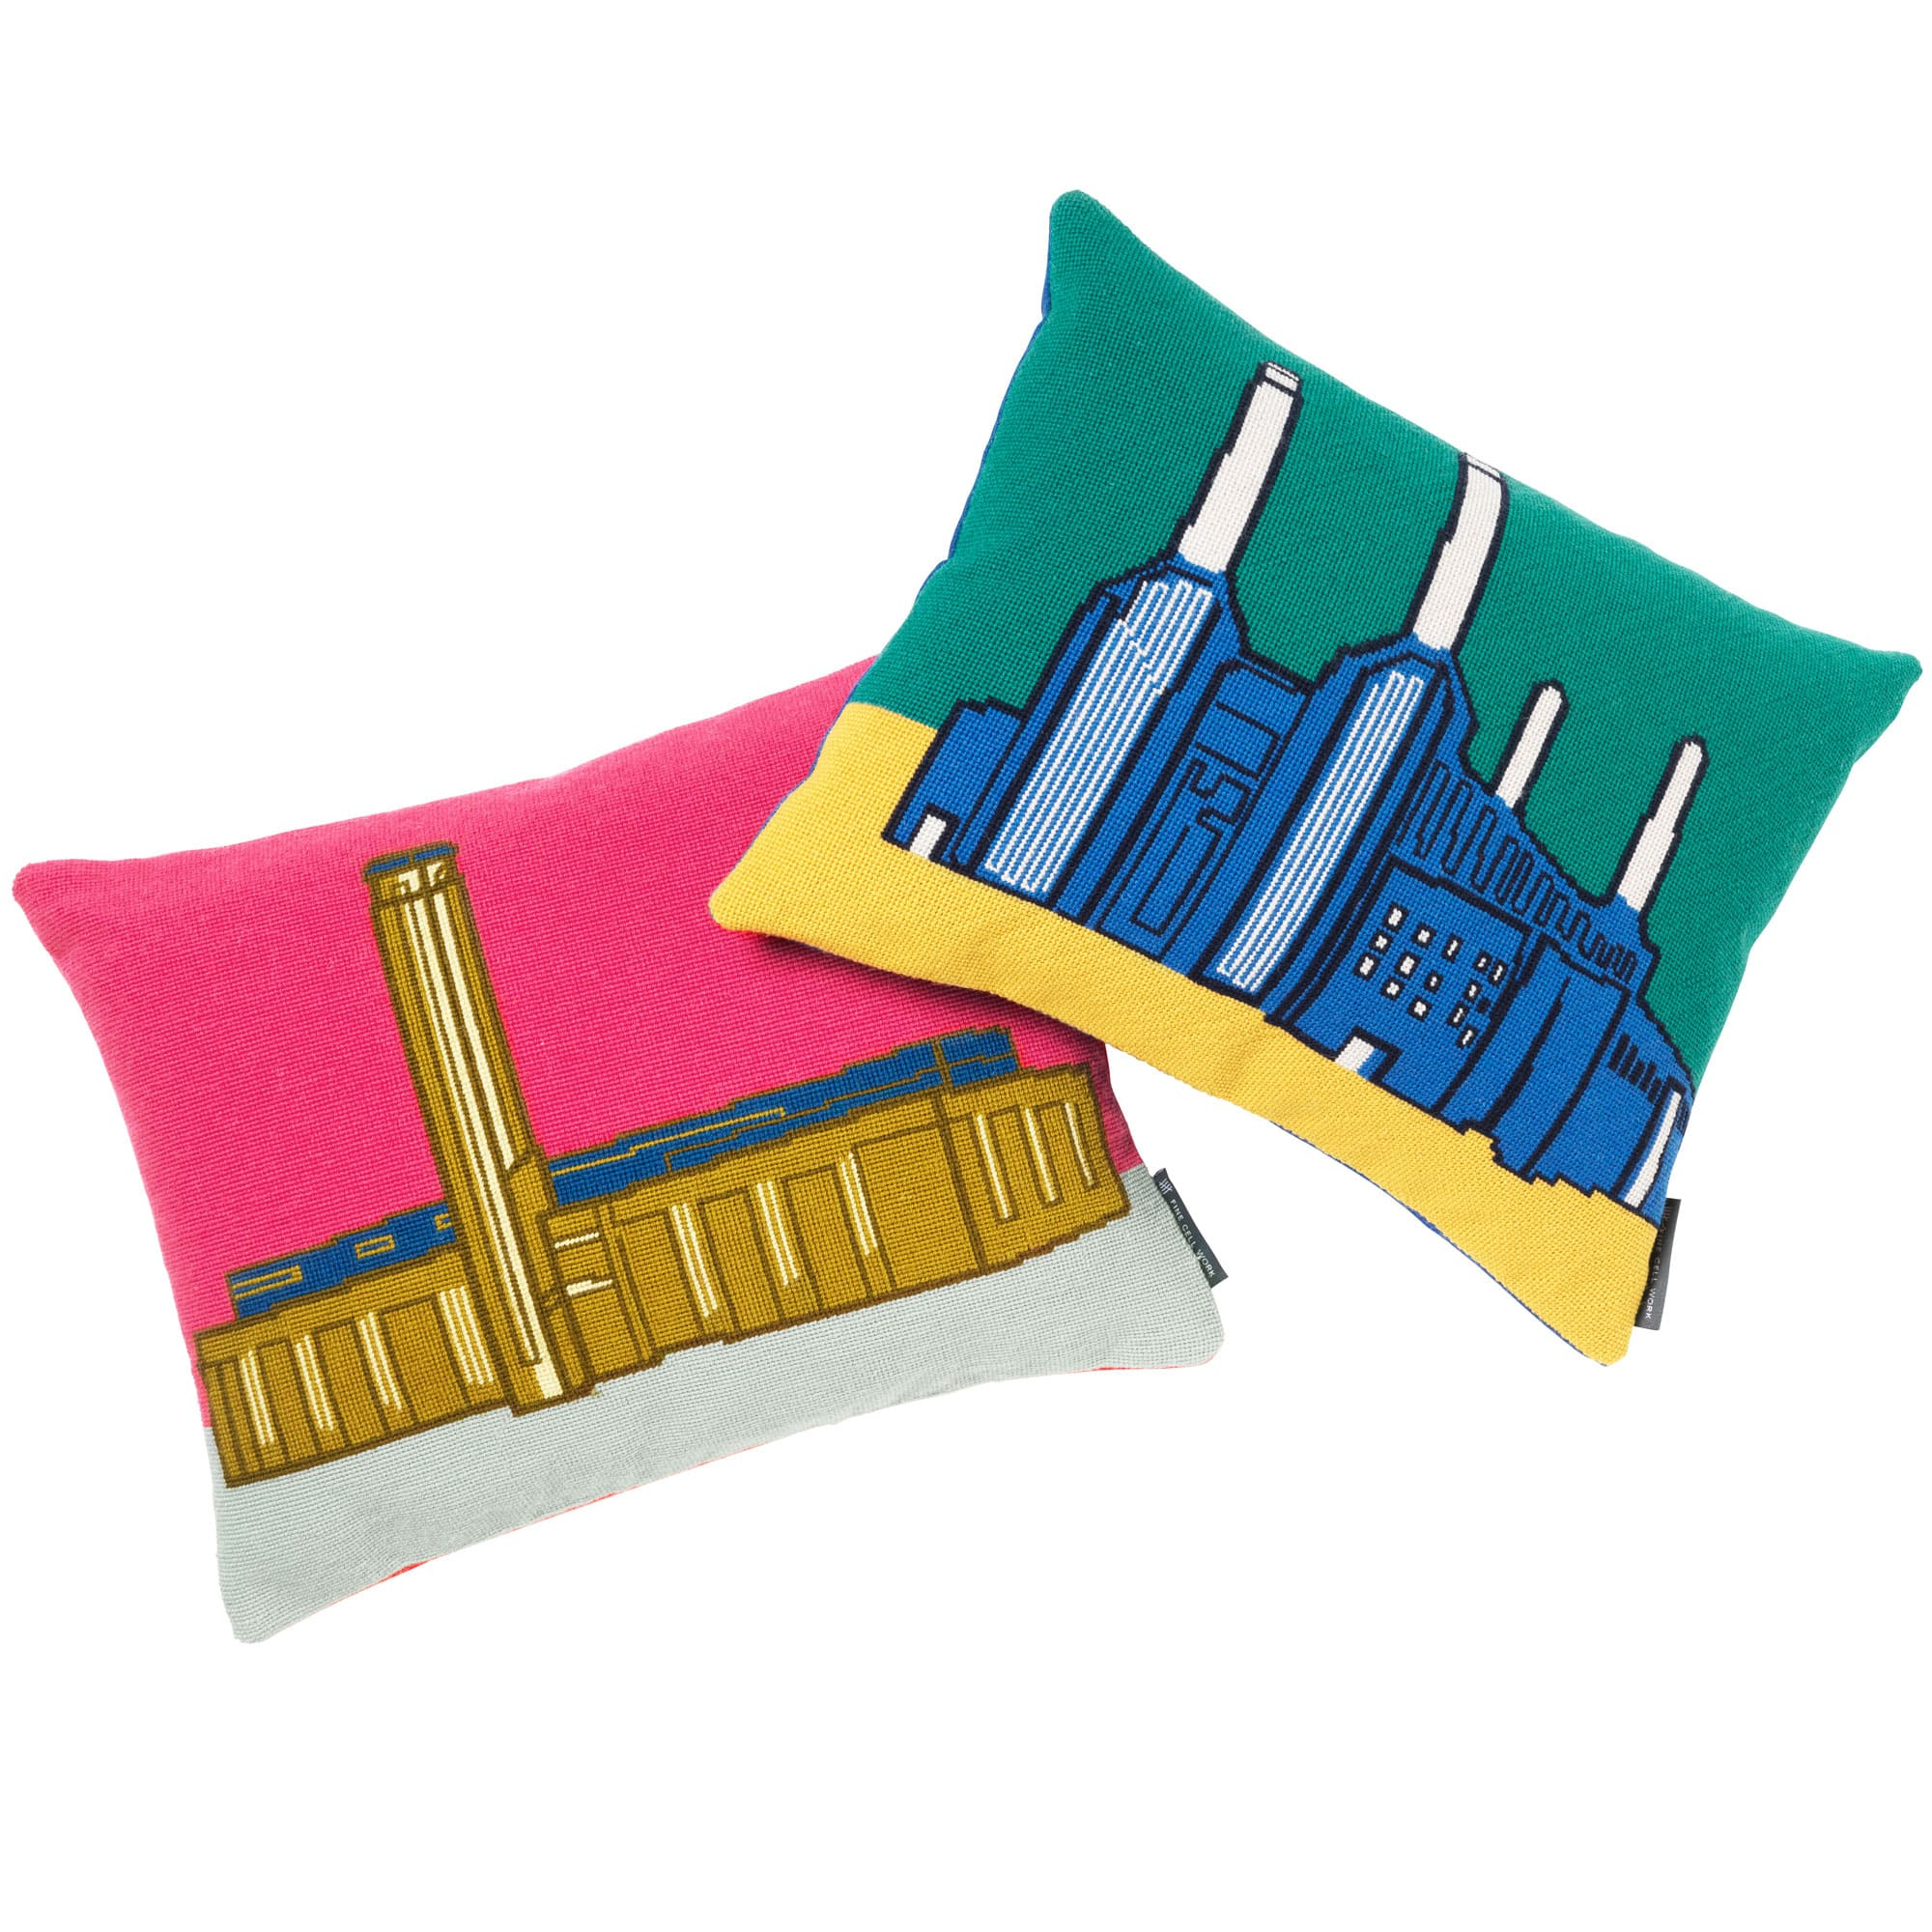 Landmarks Battersea Power Station Tate Modern Needlepoint Cushion Fine Cell Work